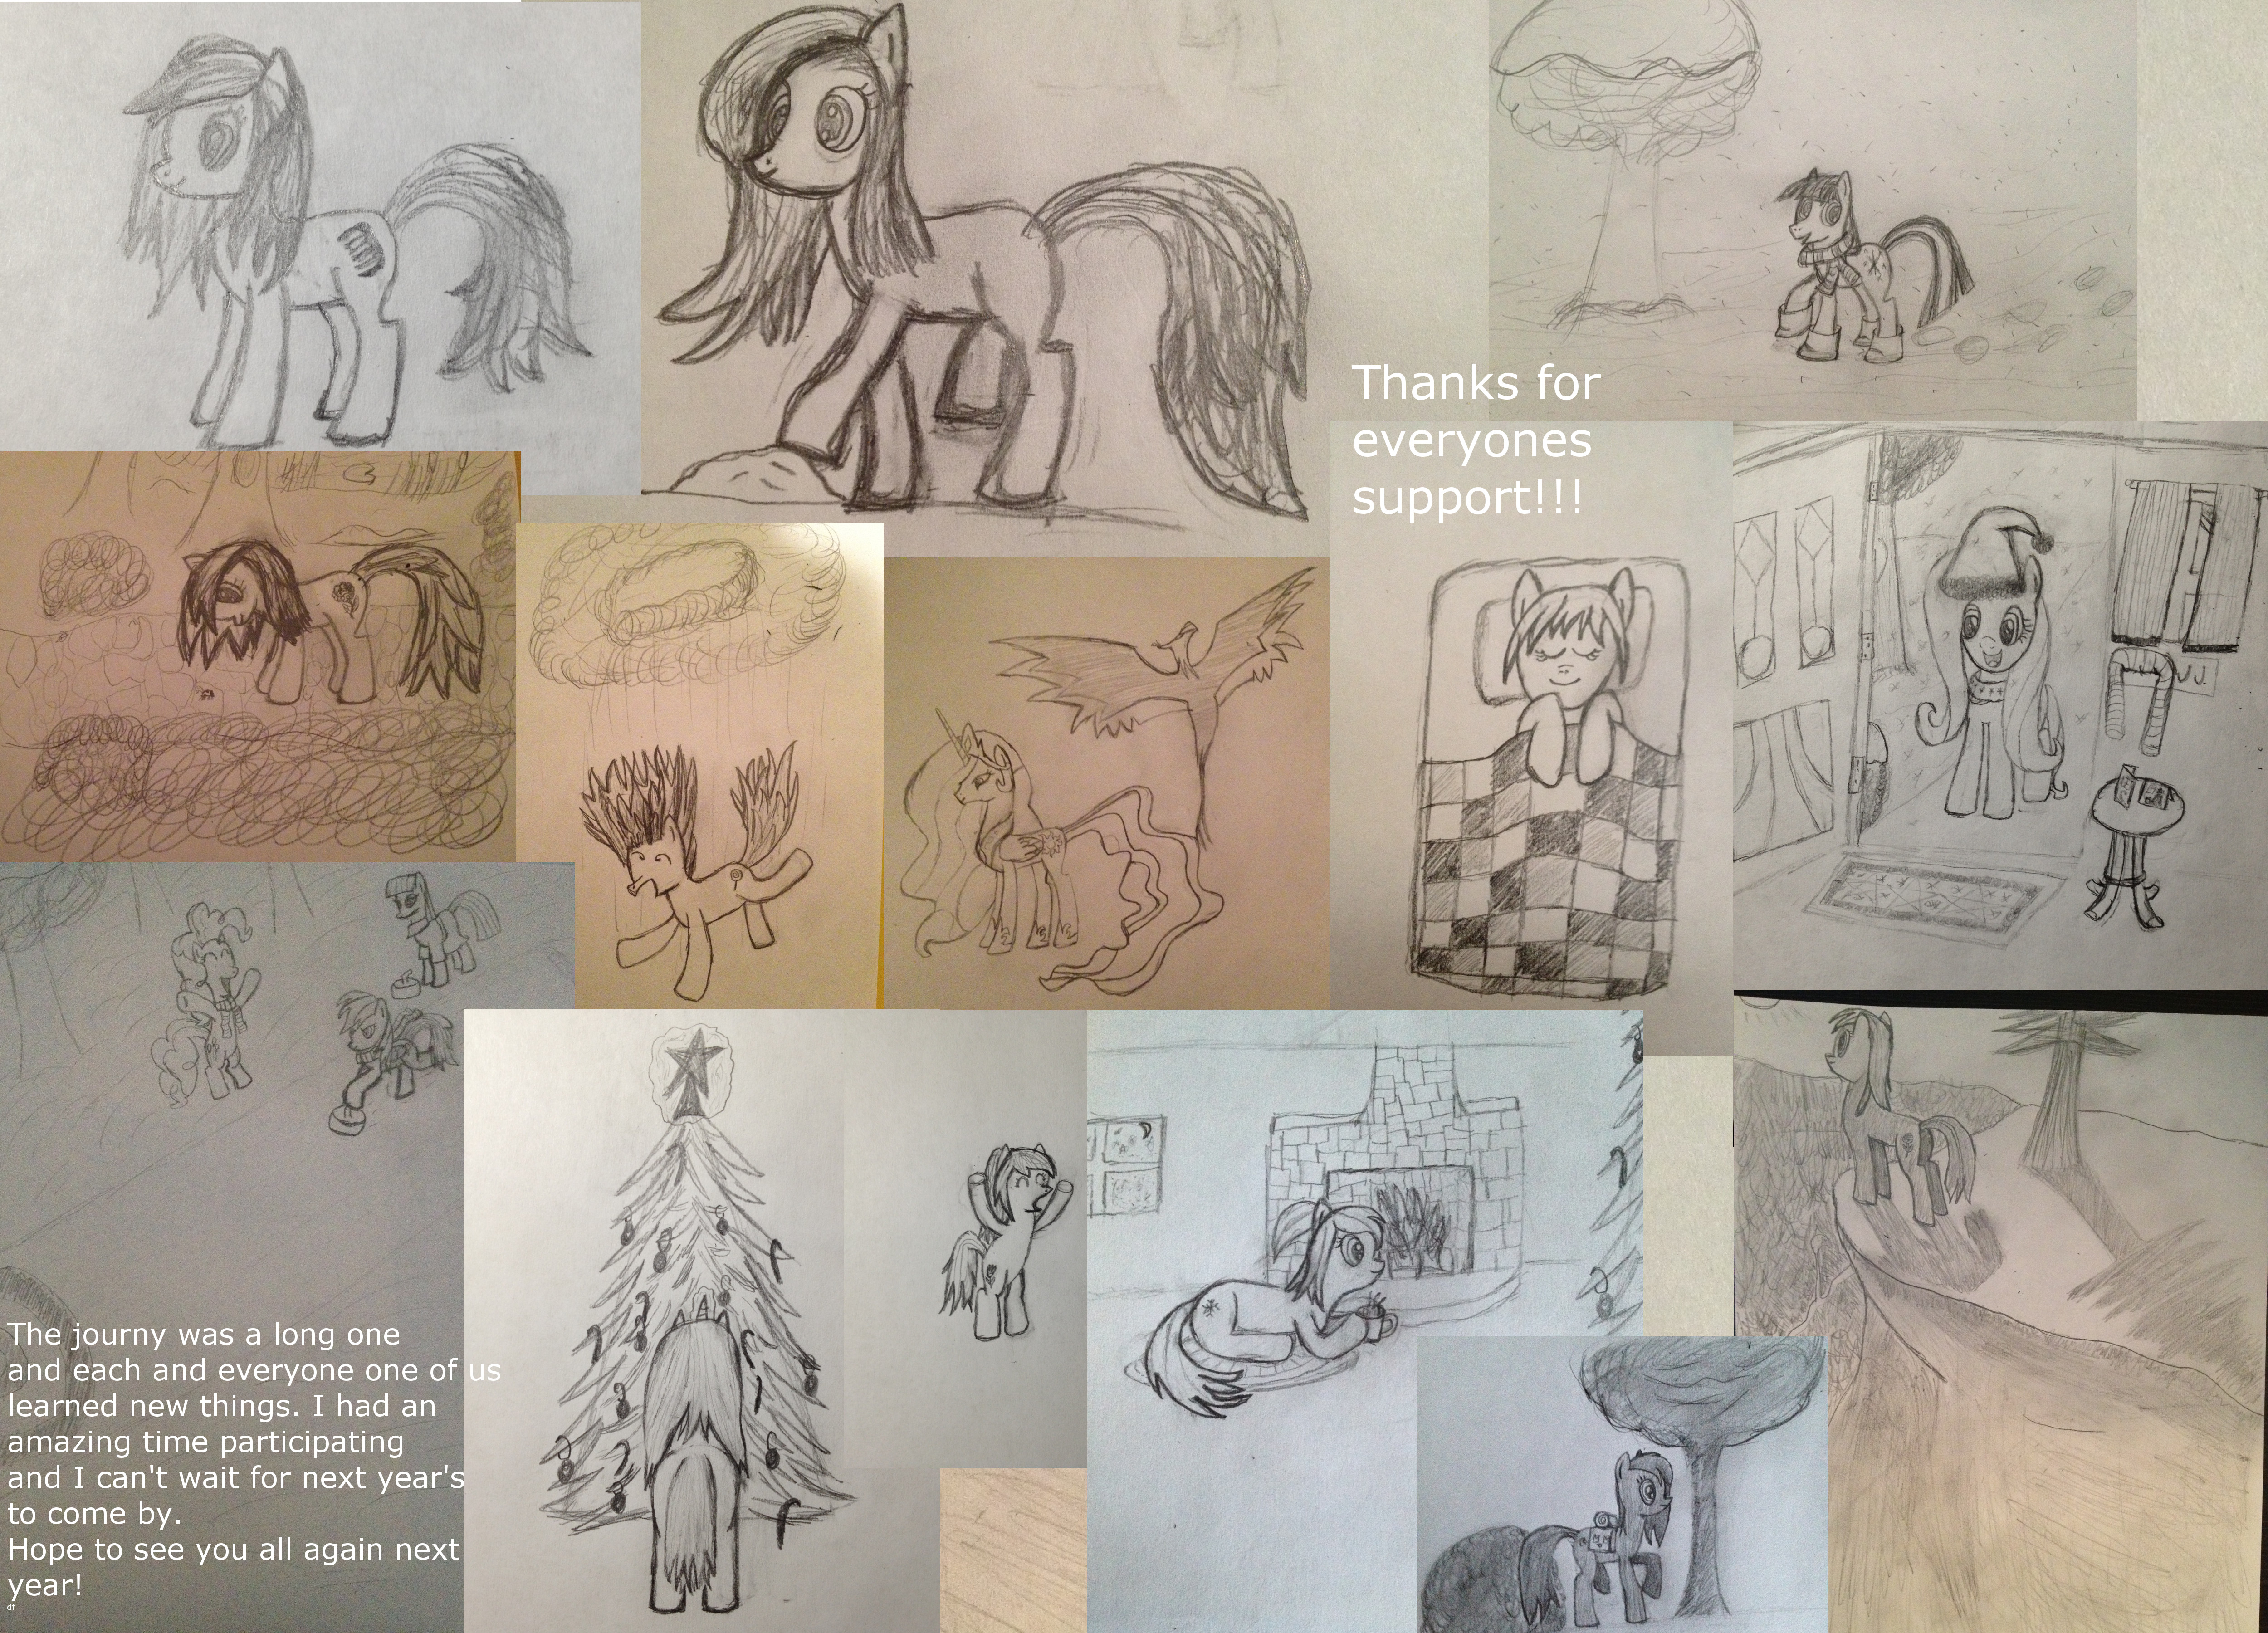 EVERY previous theme by vaser888